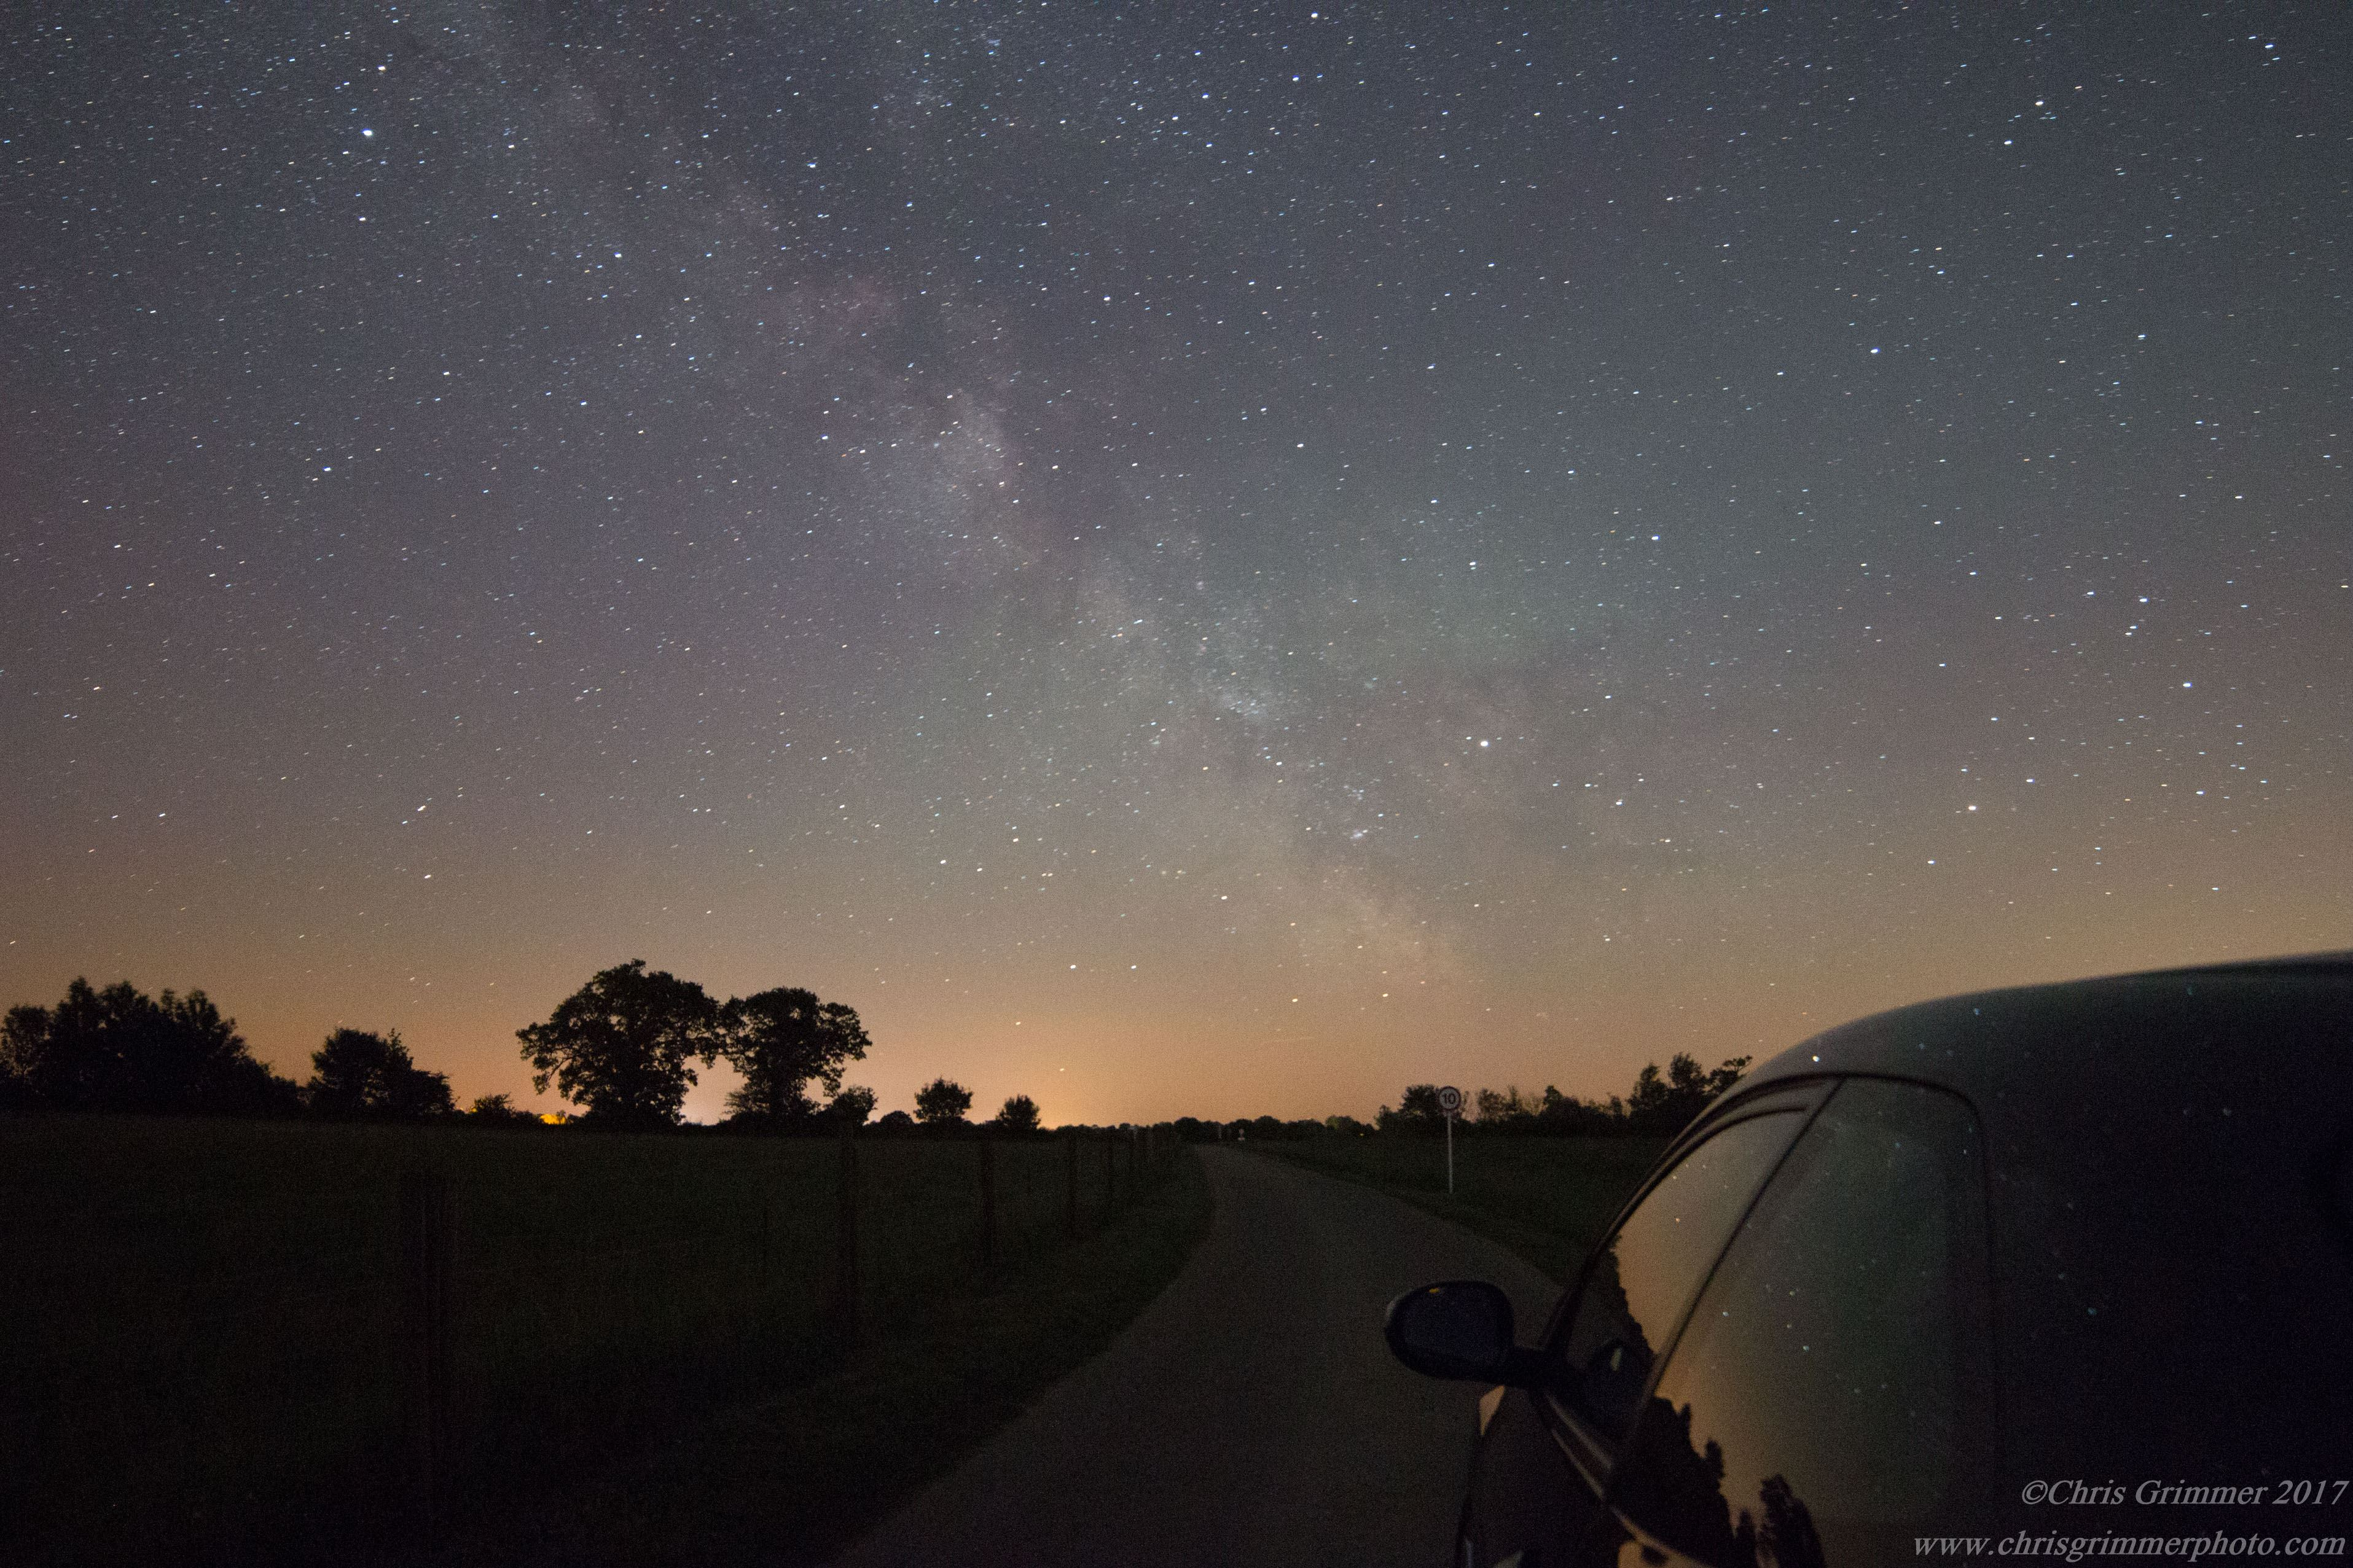 Night sky photography by Chris Grimmer